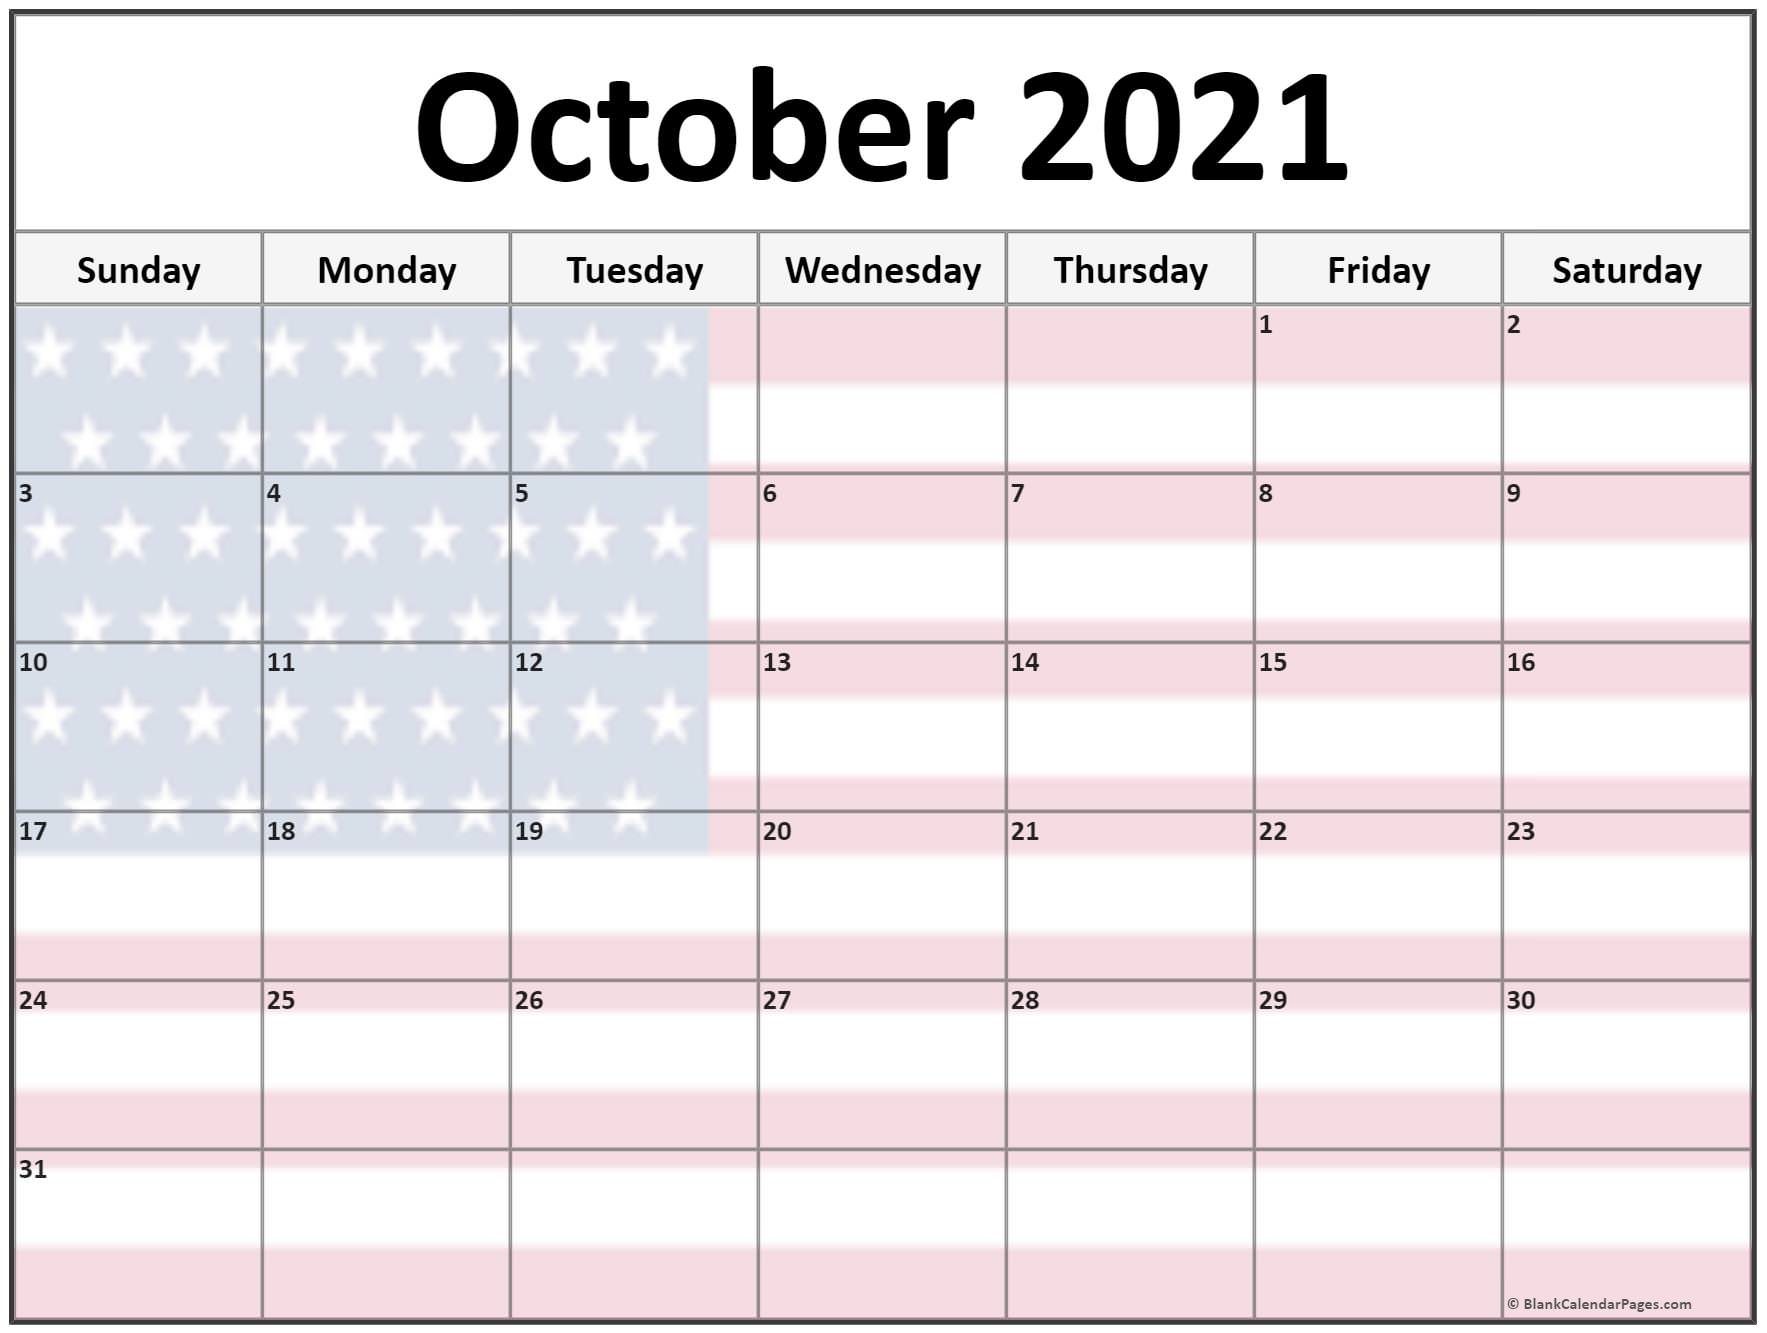 October 2021 USA flag monthly calendar